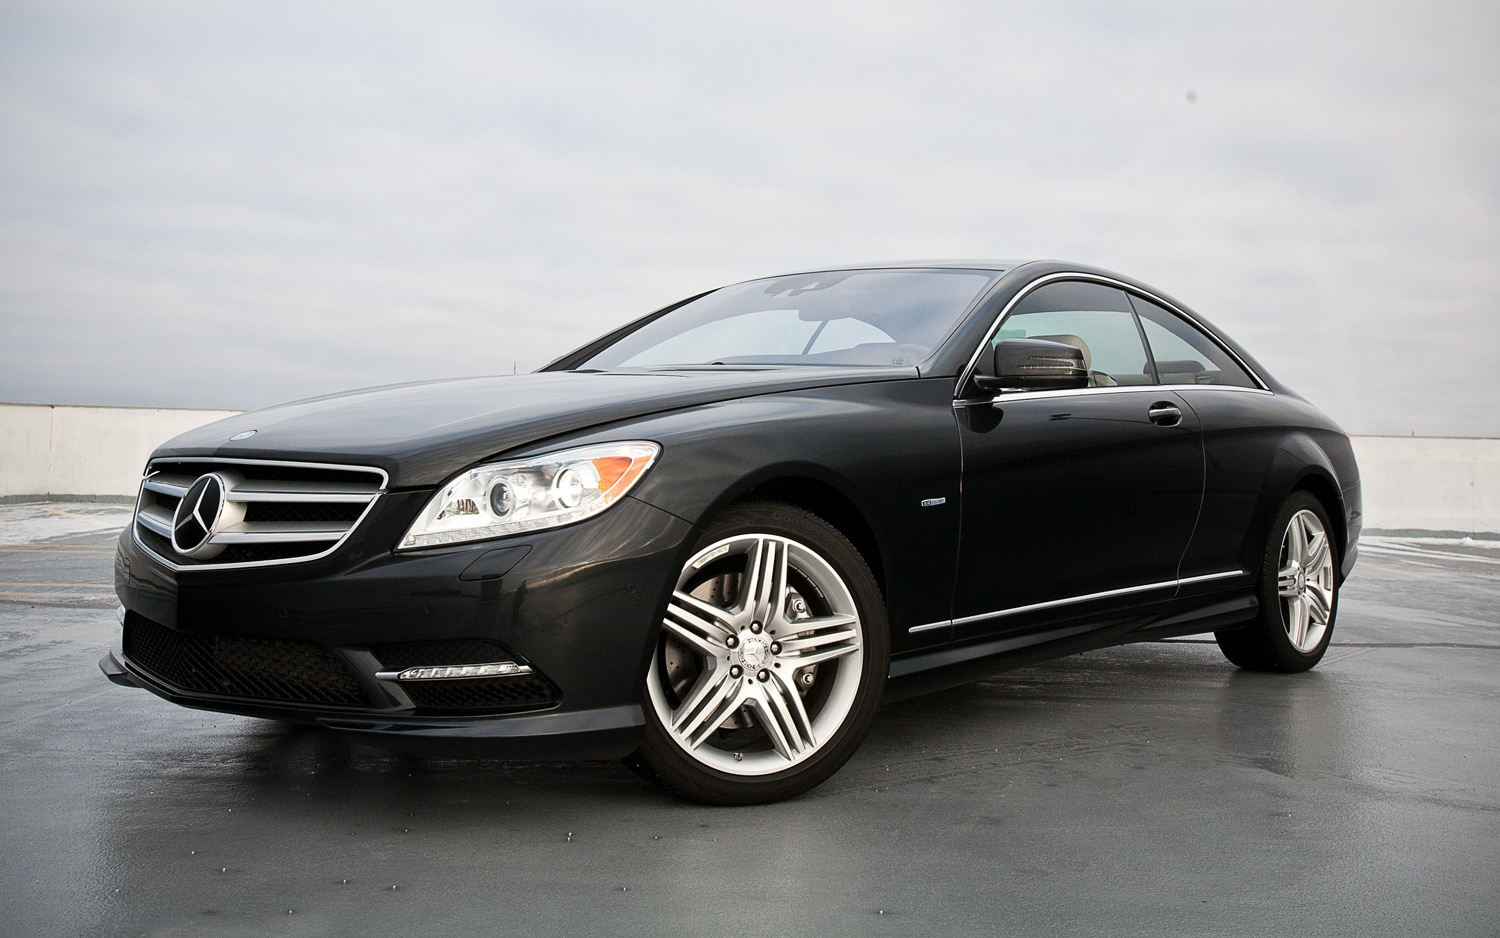 2012 mercedes benz cl550 4matic editors 39 notebook for Pictures of a mercedes benz